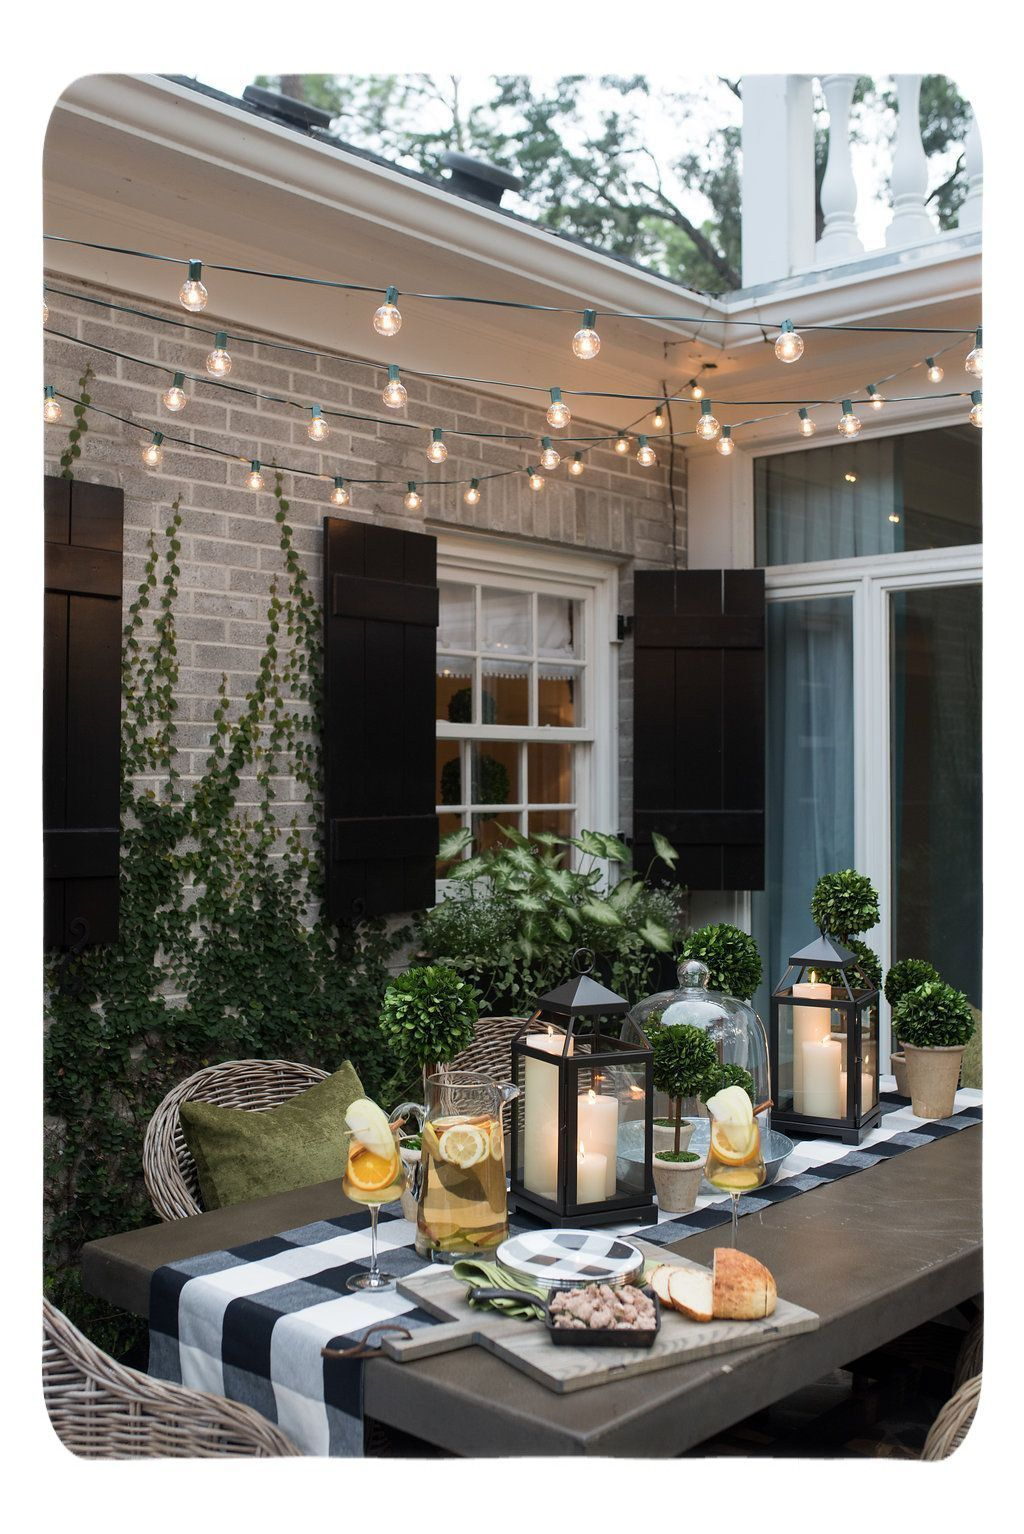 Budget Decorating. Low-priced finds help make a huge effect on a stylish house o... - #budget #decorating #effect #finds #house #priced #stylish - #HomeDecoratingIdeas